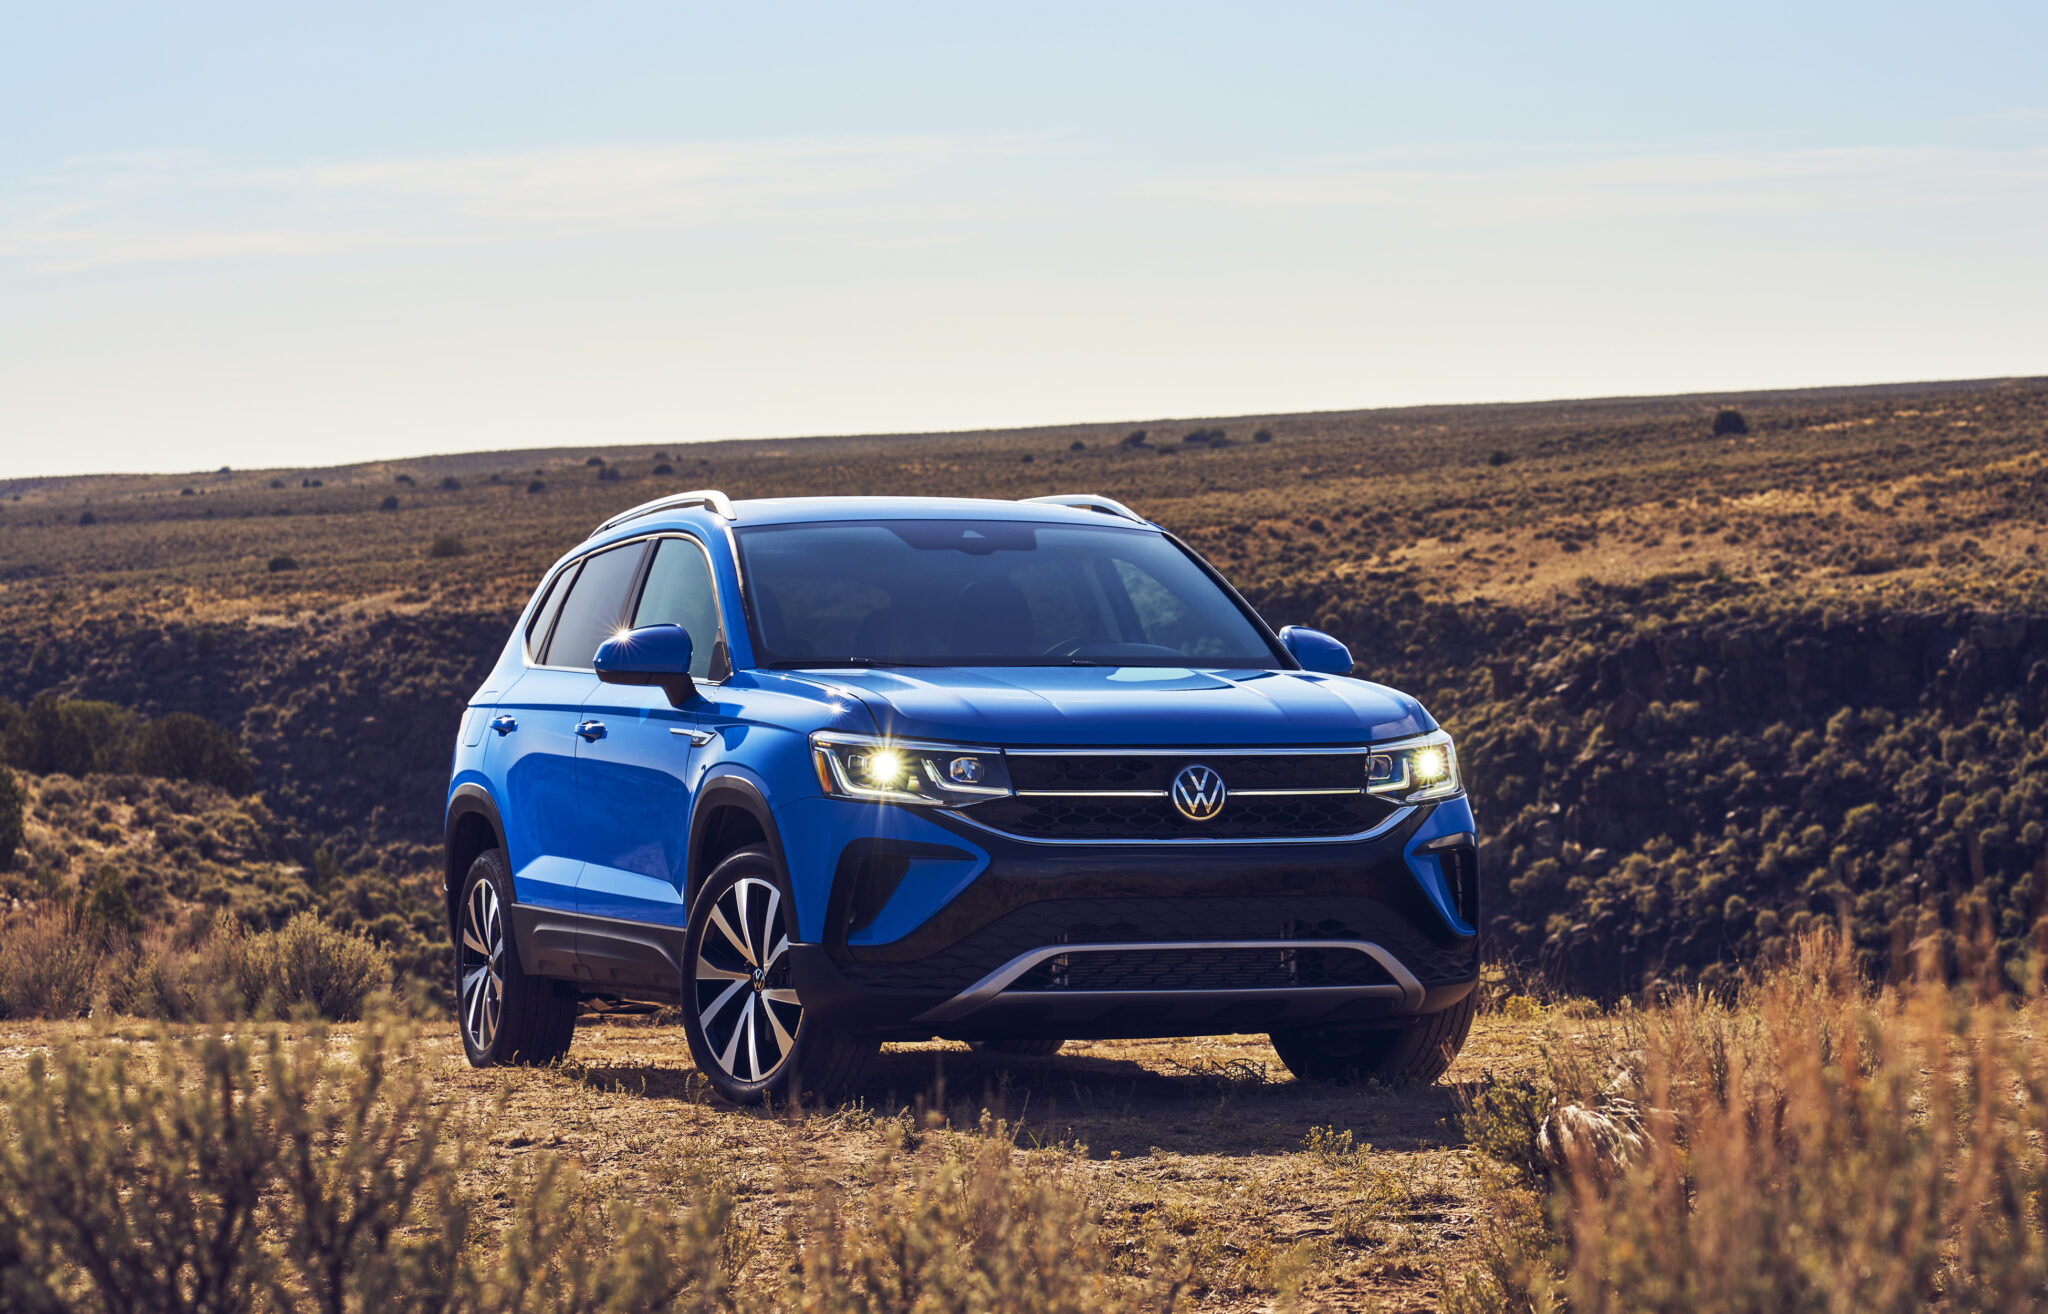 NEW VOLKSWAGEN TAOS ROUNDS OUT VW COMPACT SUV OFFERINGS